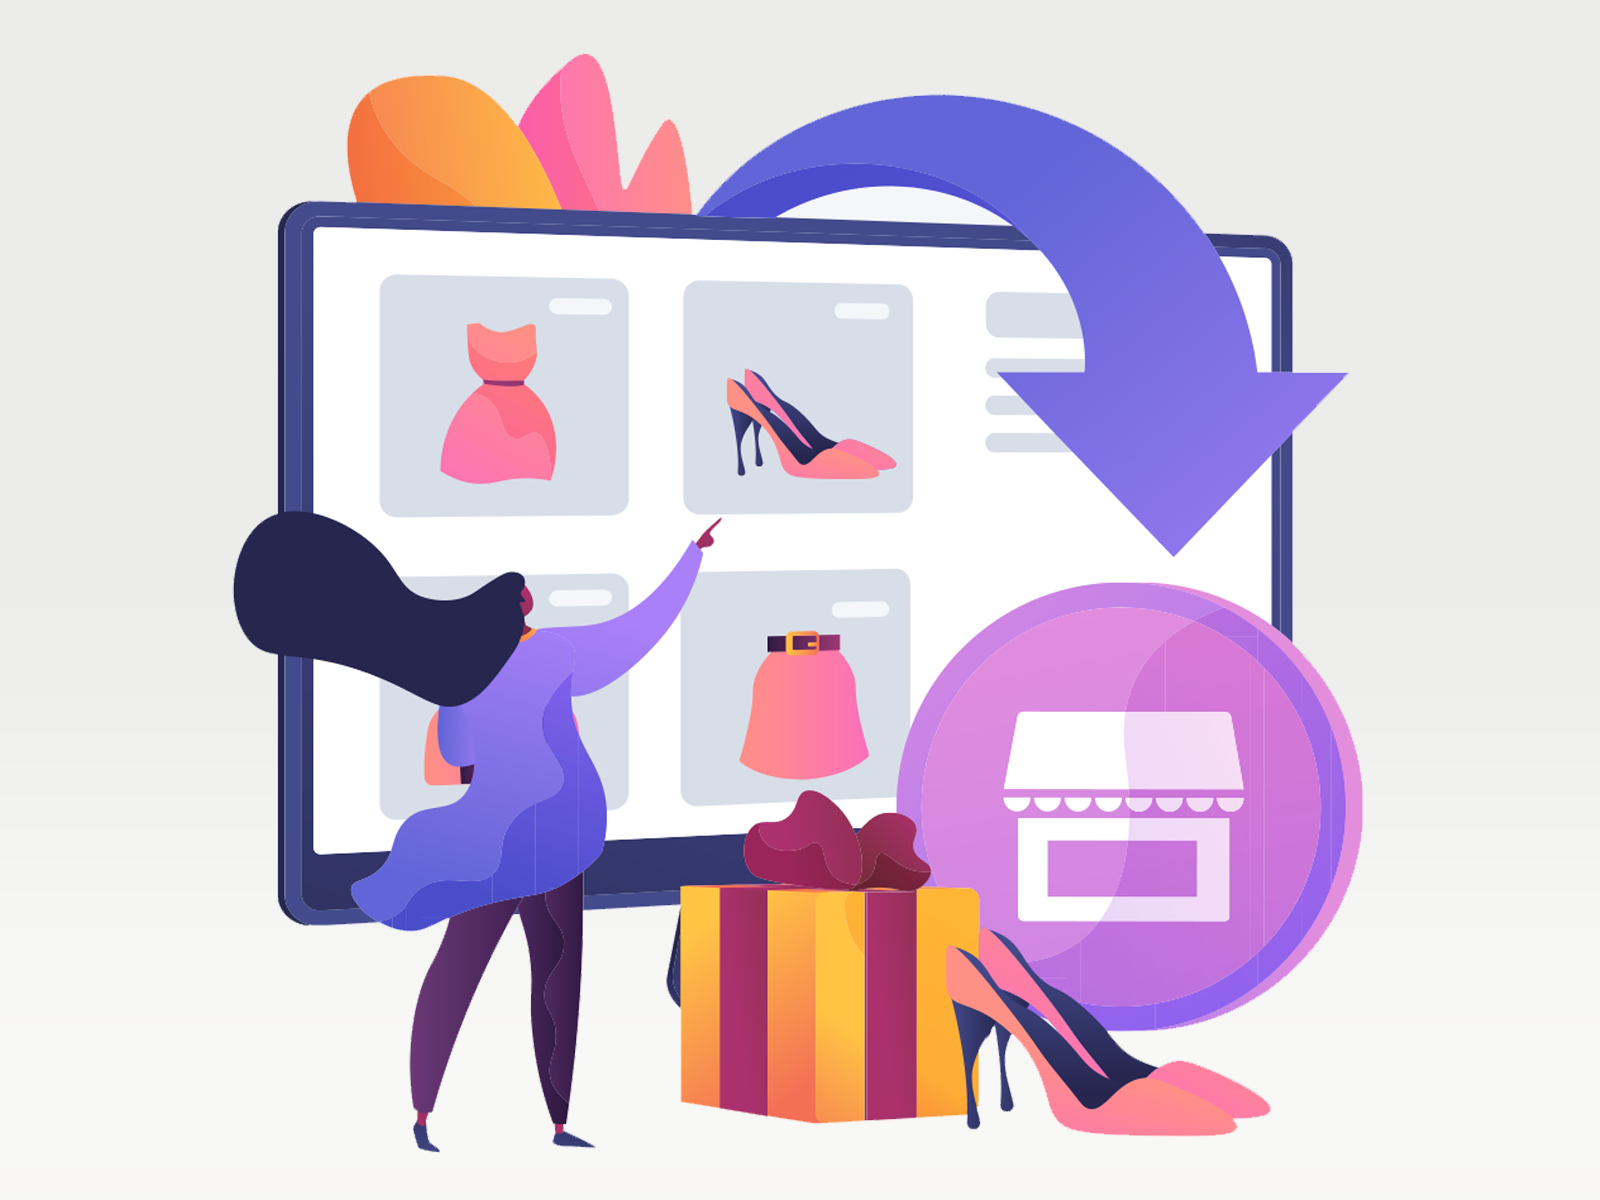 Customers easily buy products